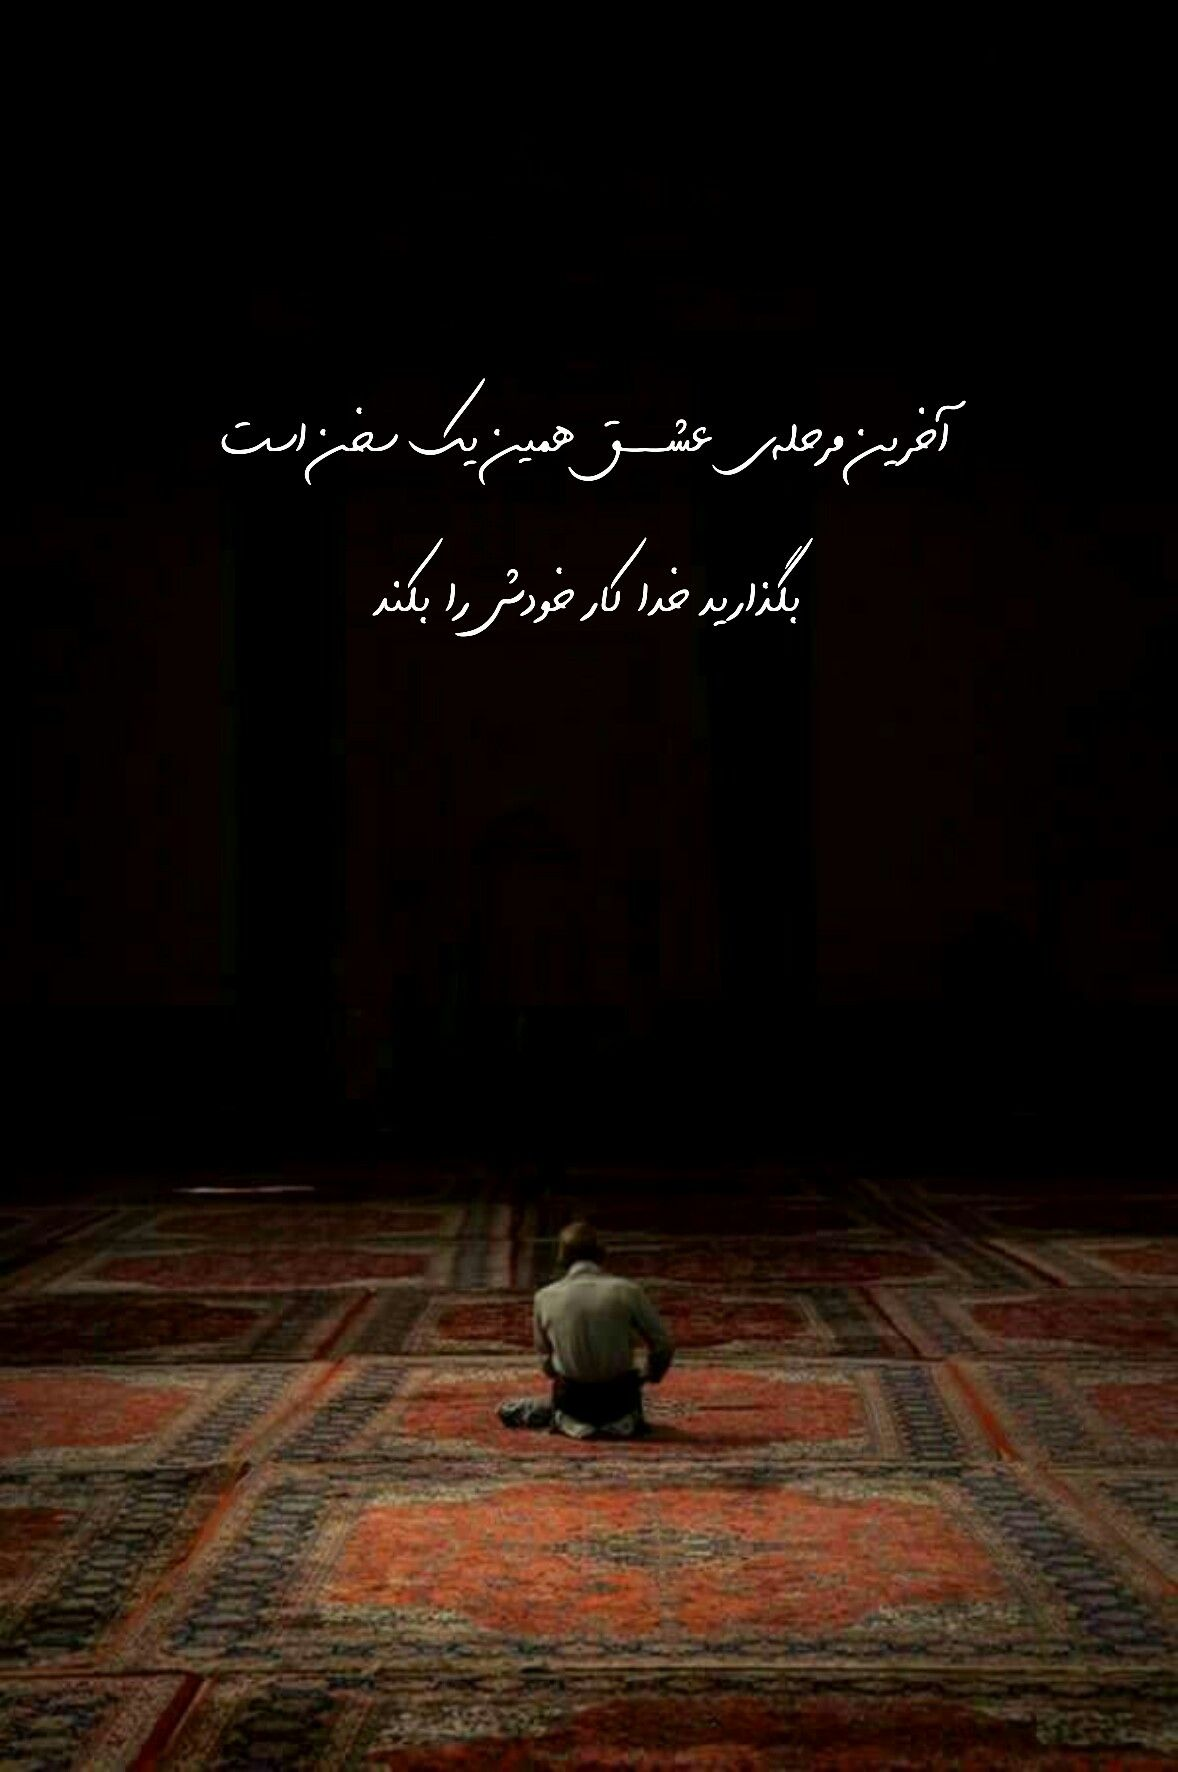 Pin By Sima On Persian Poems Cool Words Text On Photo Father Poems